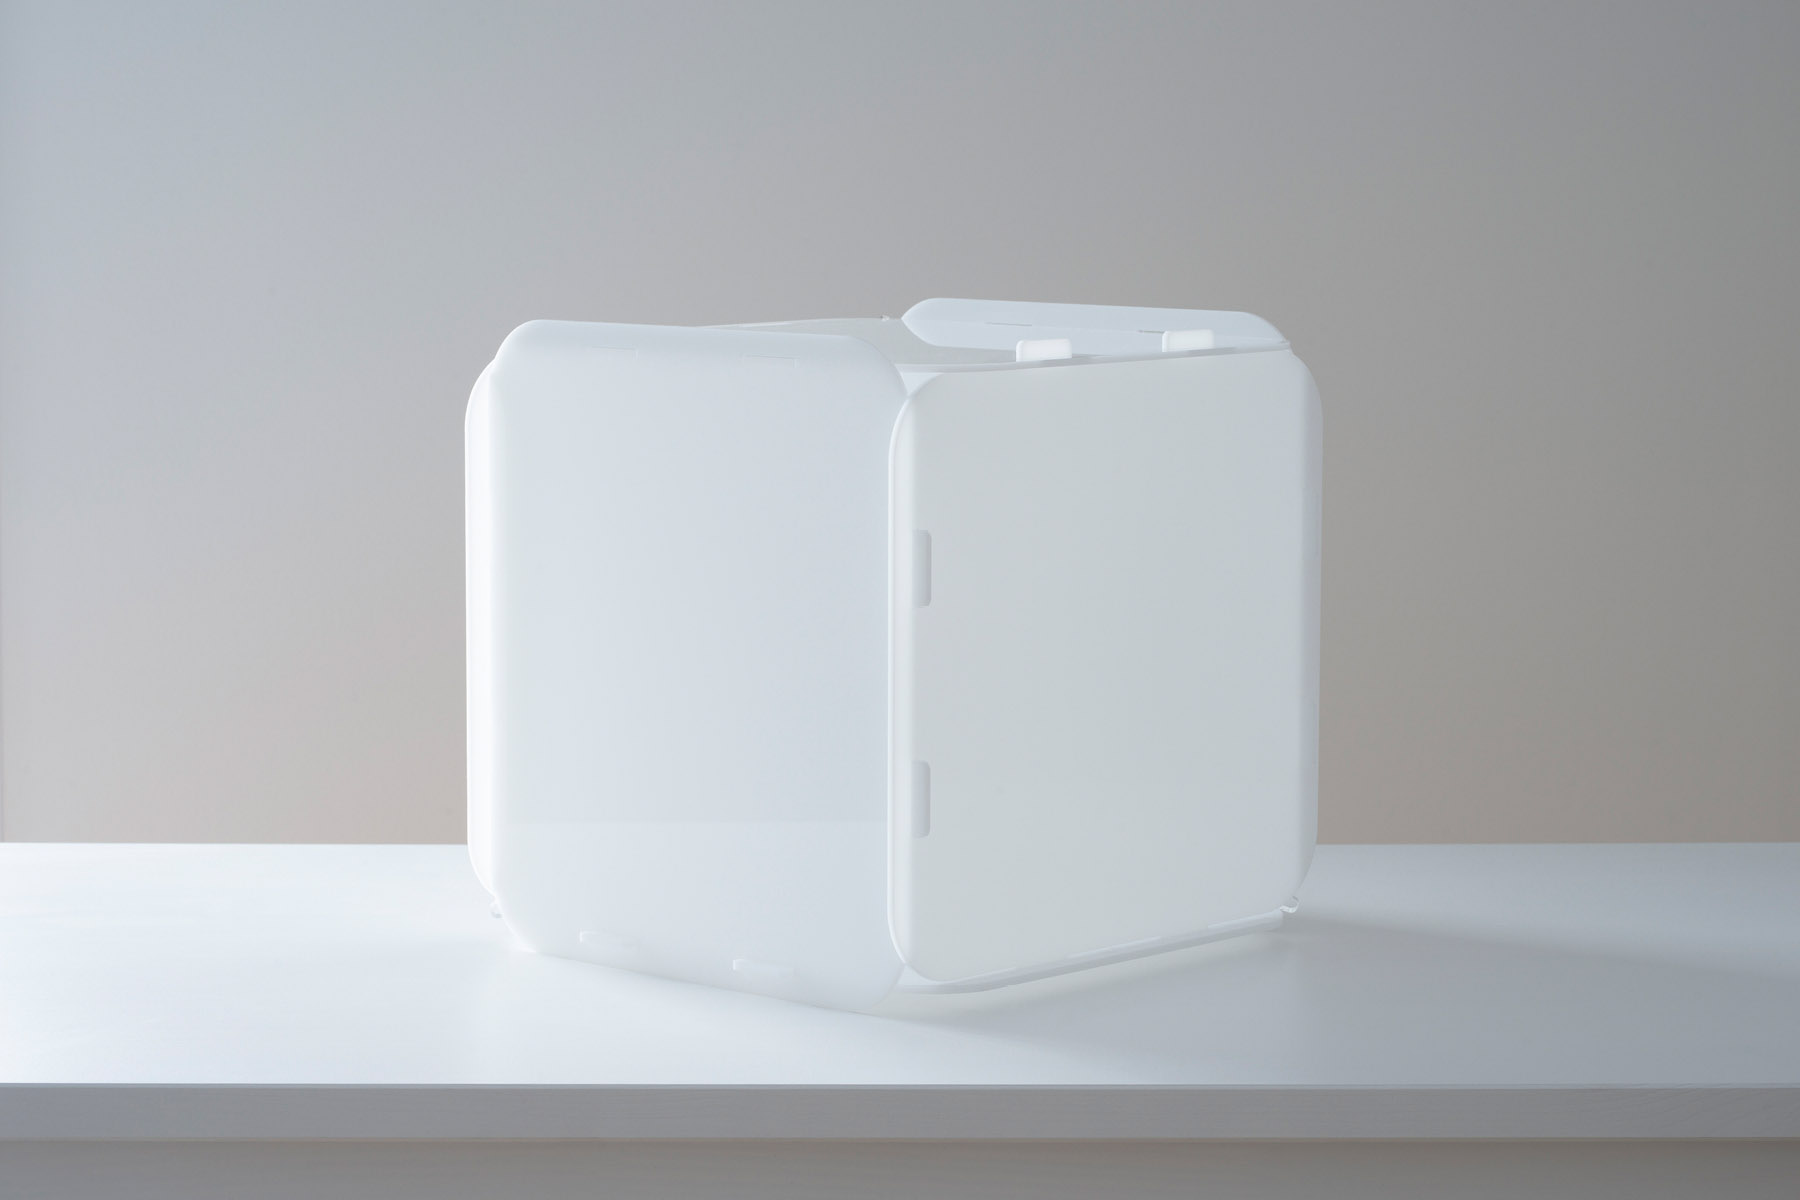 White cubic lamp with the light off